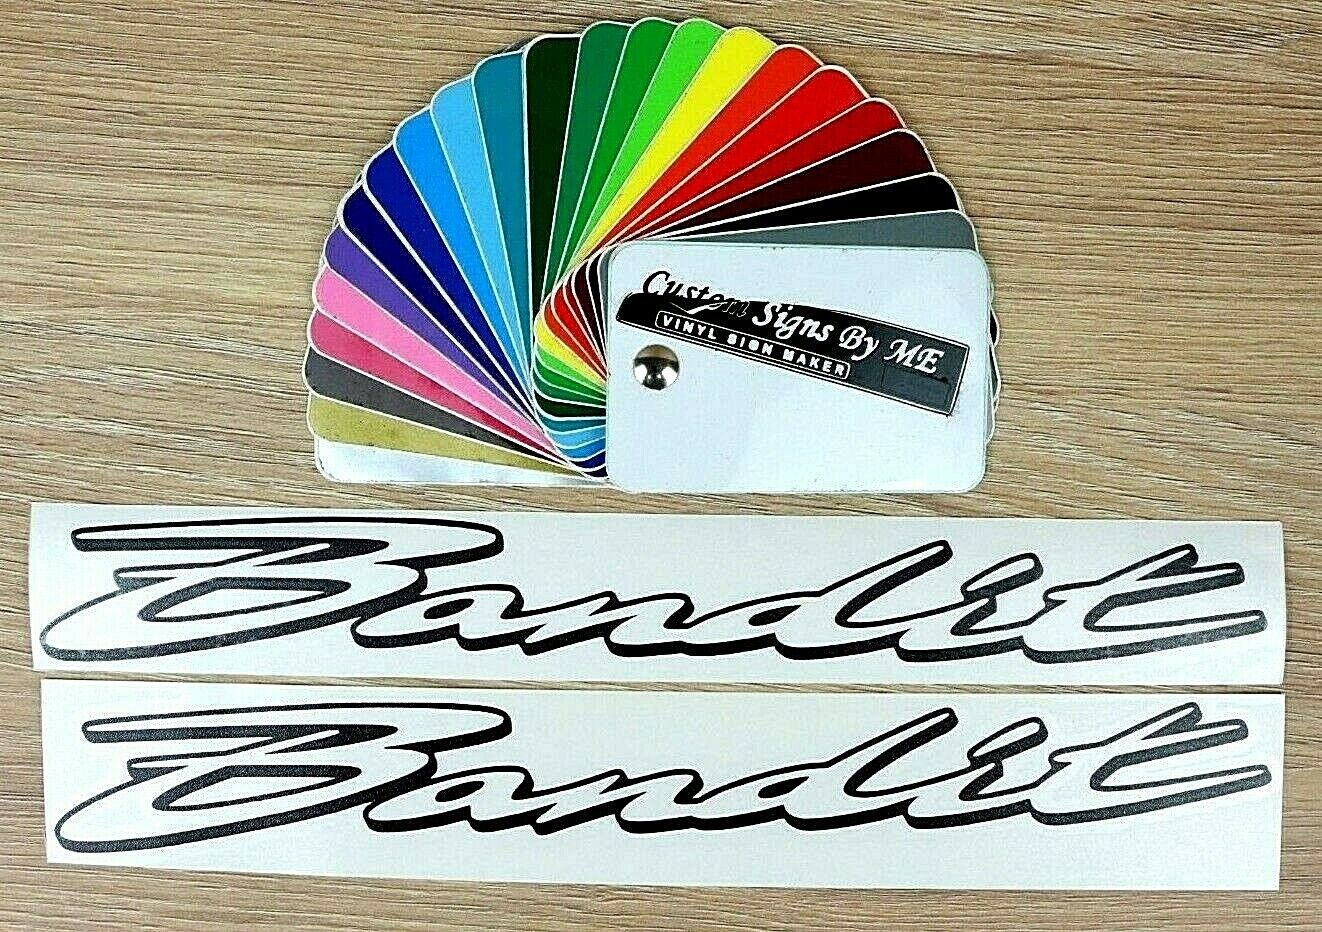 2x Bandit GSF Personalised Bike Motorbike Stickers Vinyl Decal Adhesive Fairing